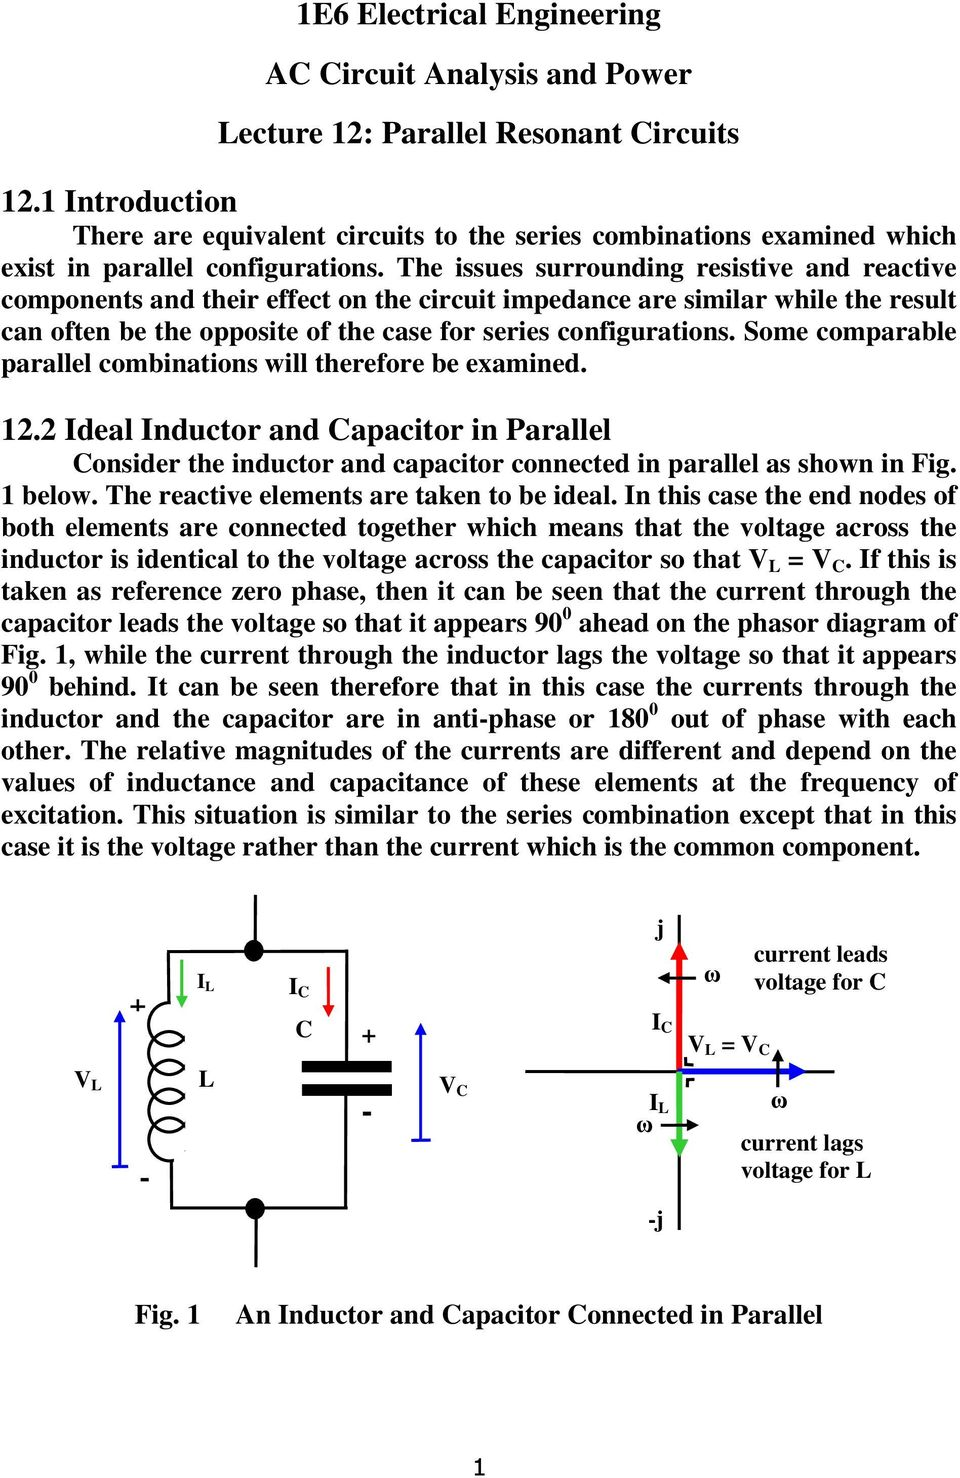 1e6 Electrical Engineering Ac Circuit Analysis And Power Lecture 12 That Shows A Capacitor Connected In Parallel An Inductor Some Comparable Combnatons Wll Therefore Be Examned Ideal Apactor N